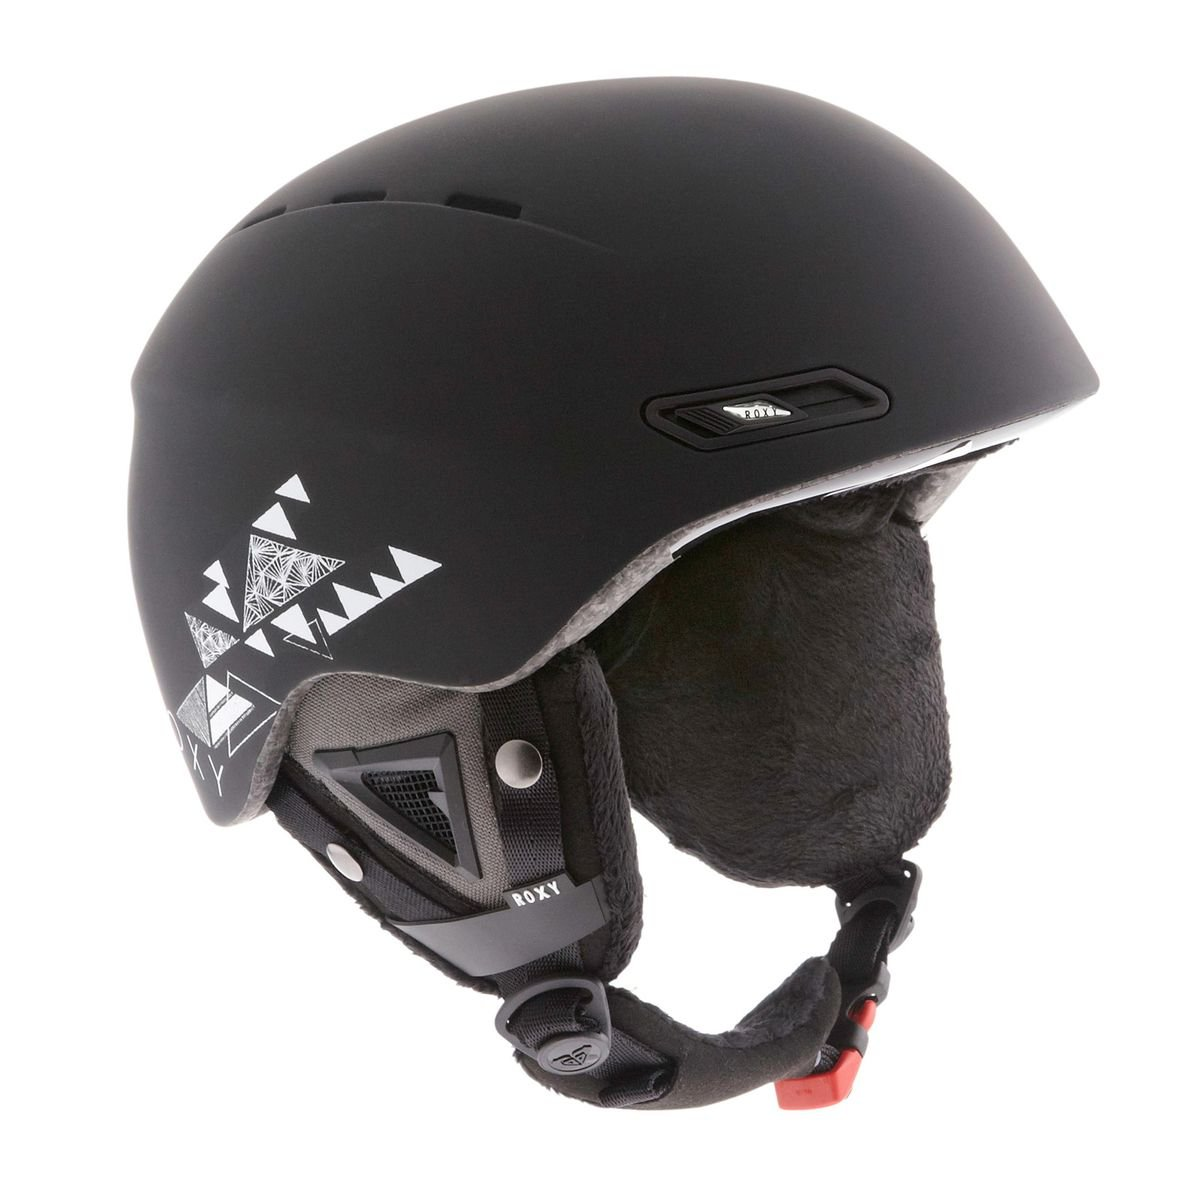 Casque femme Roxy Love is All casque